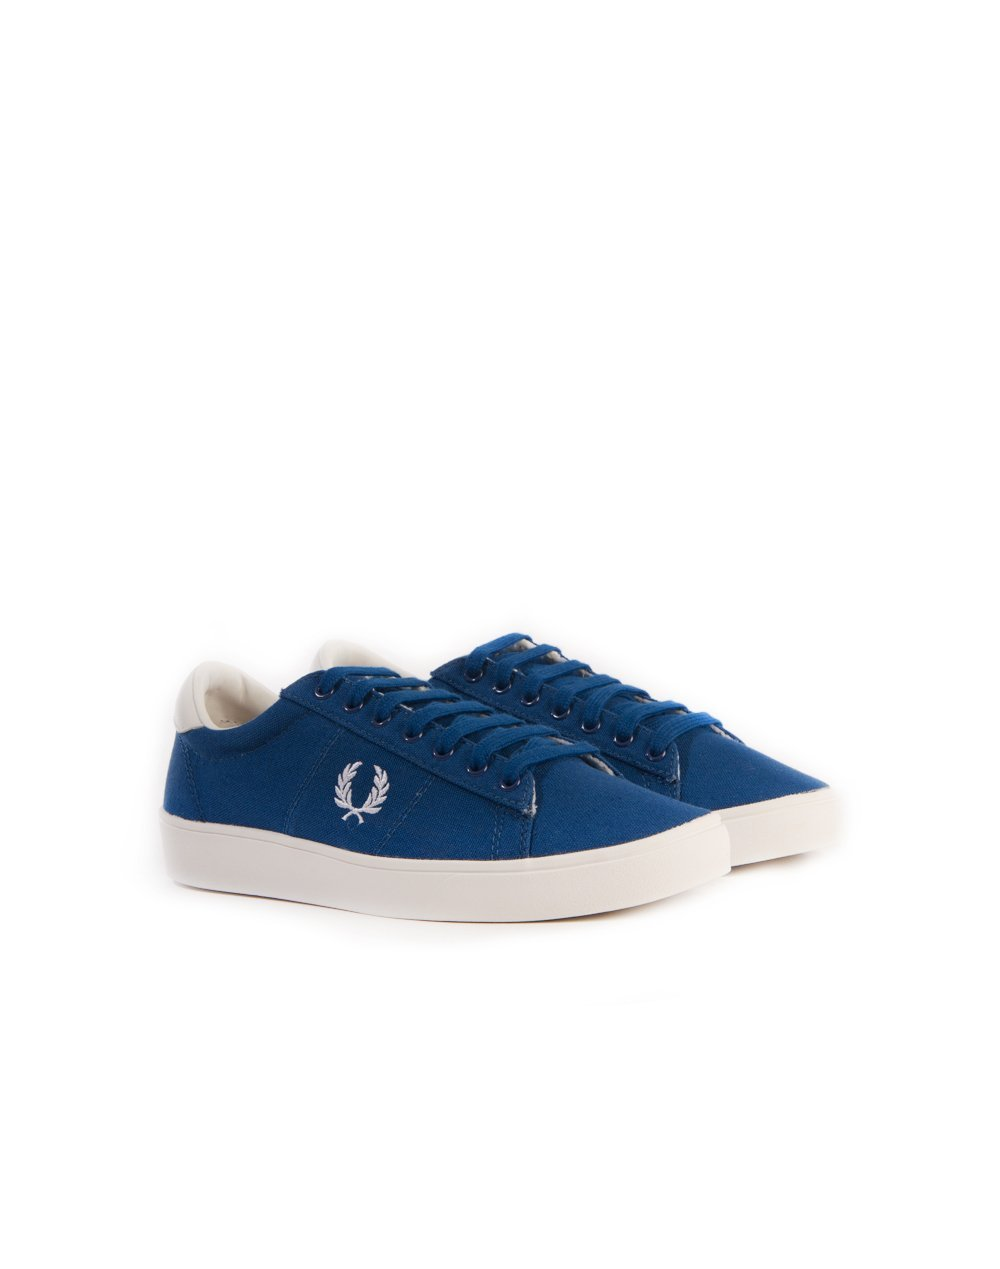 FRED PERRY SPENCER CANVAS B8285 ROYAL